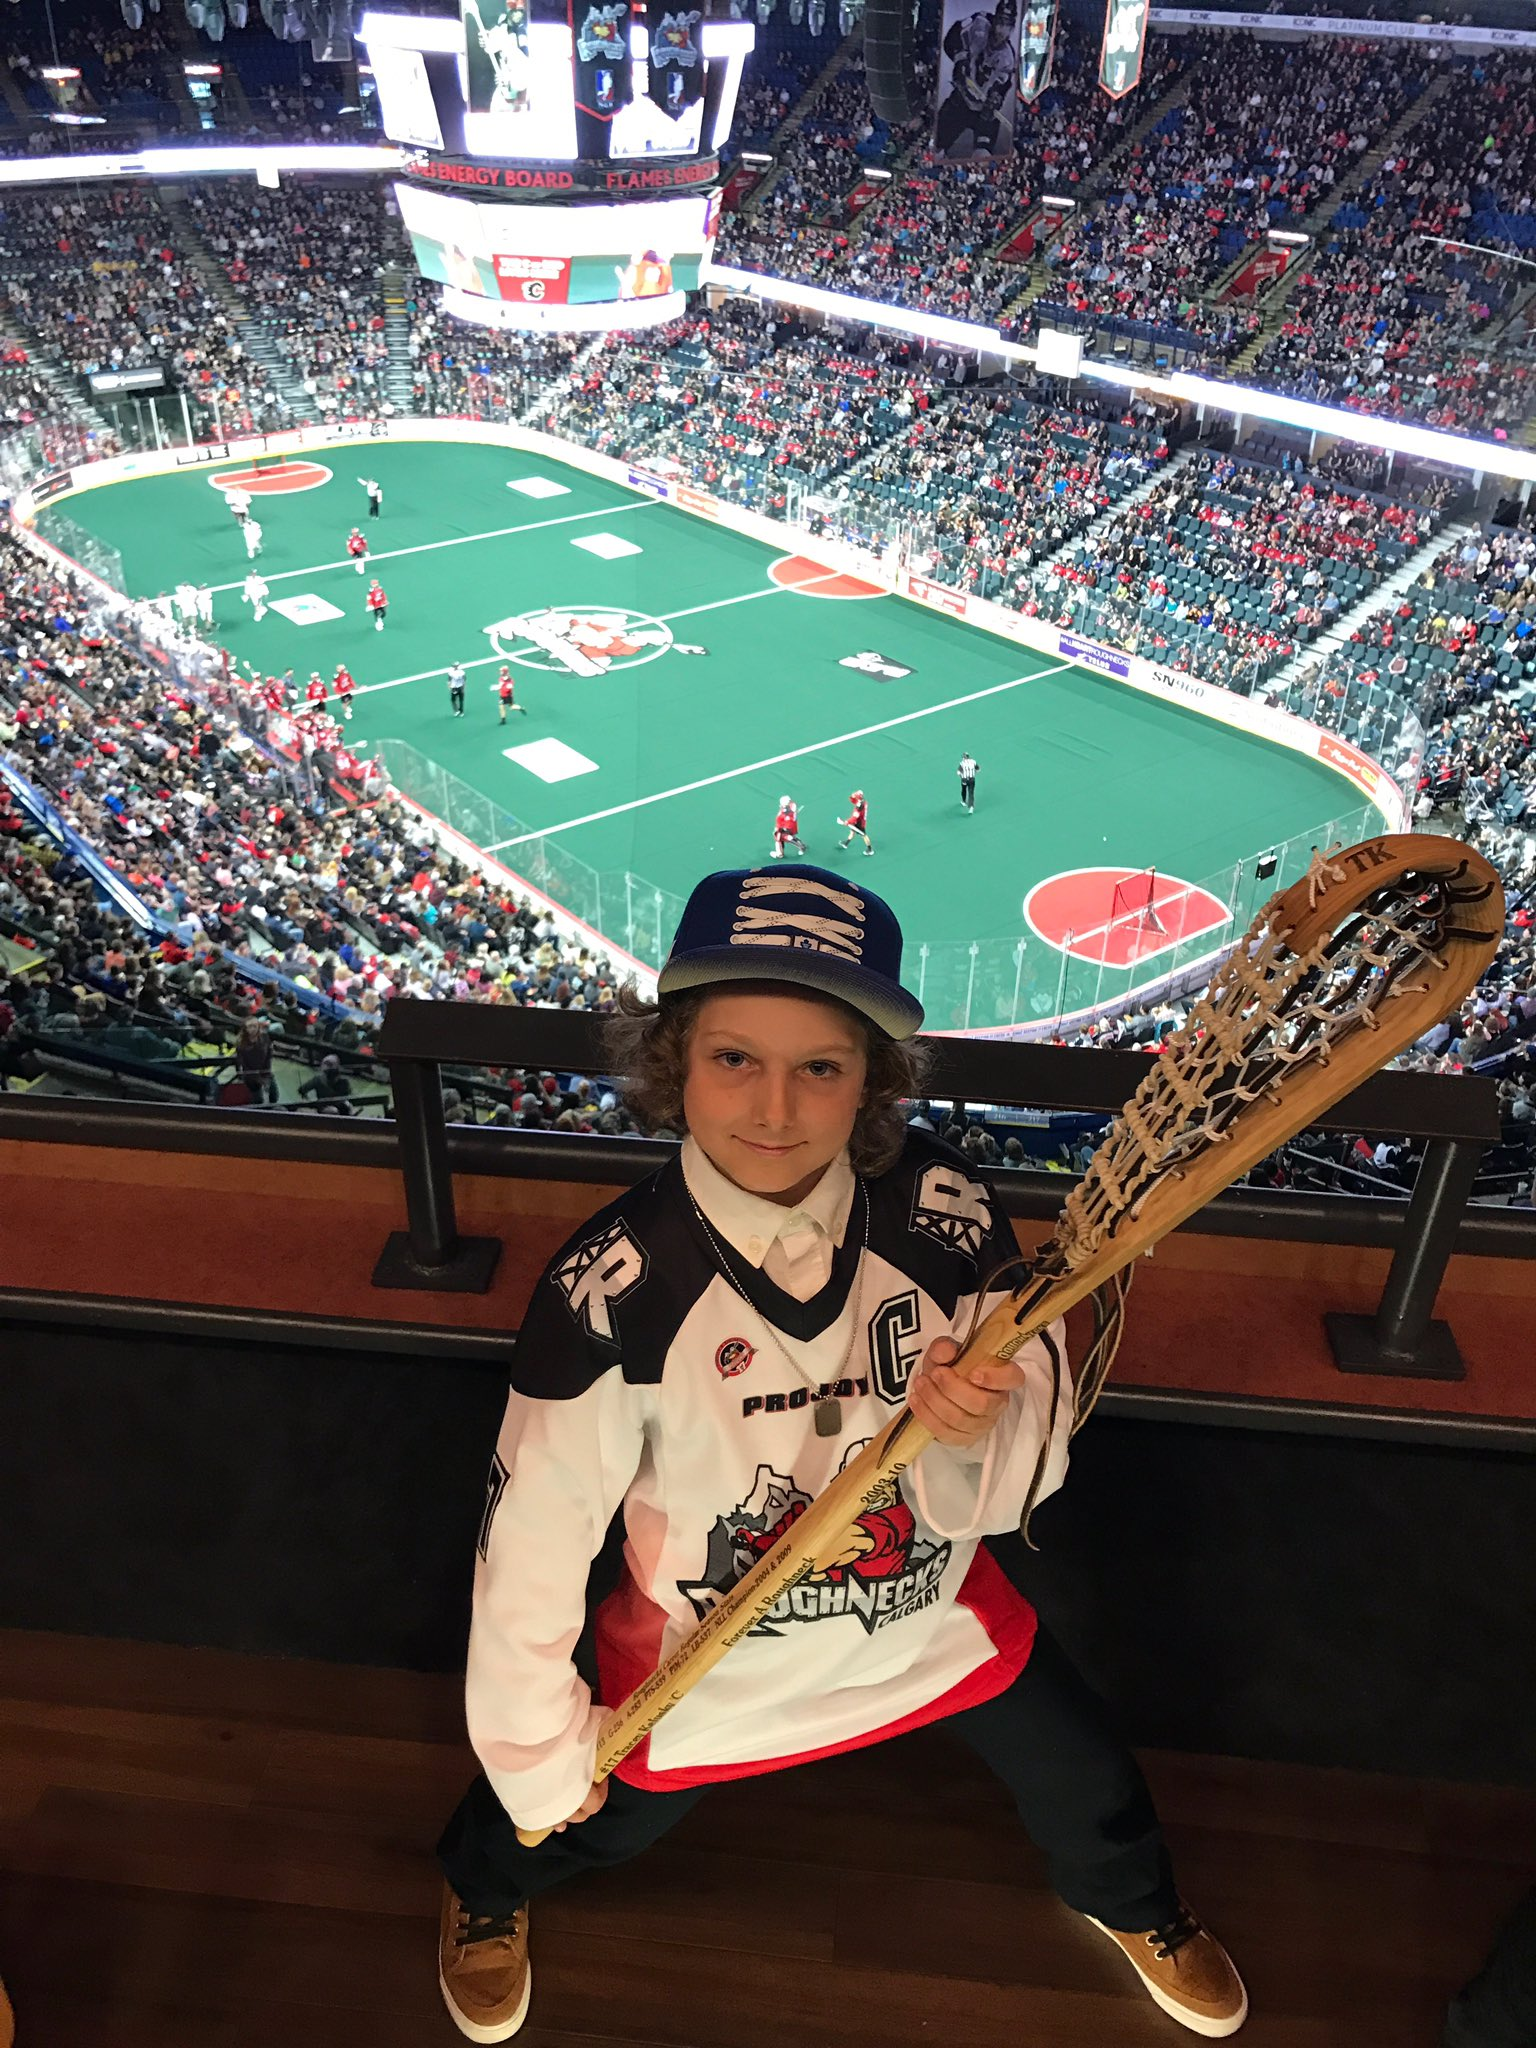 .@Traceykelusky17's son Keller with his stick! #ForeverTK https://t.co/jT4UT6DmI4